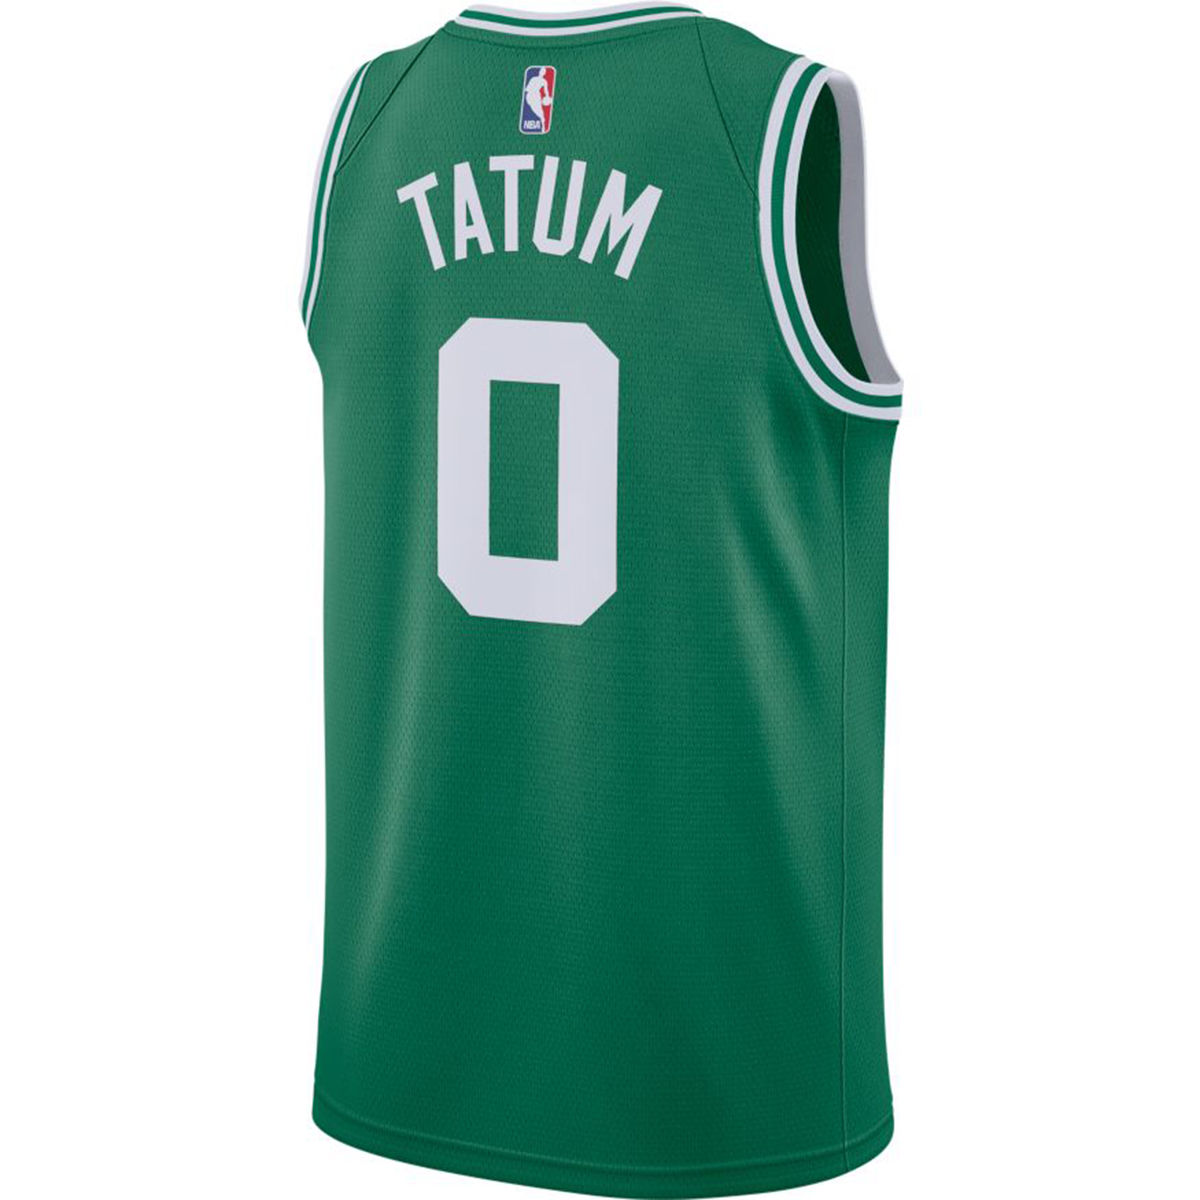 Boston Celtics Adult Jayson Tatum Swingman Jersey